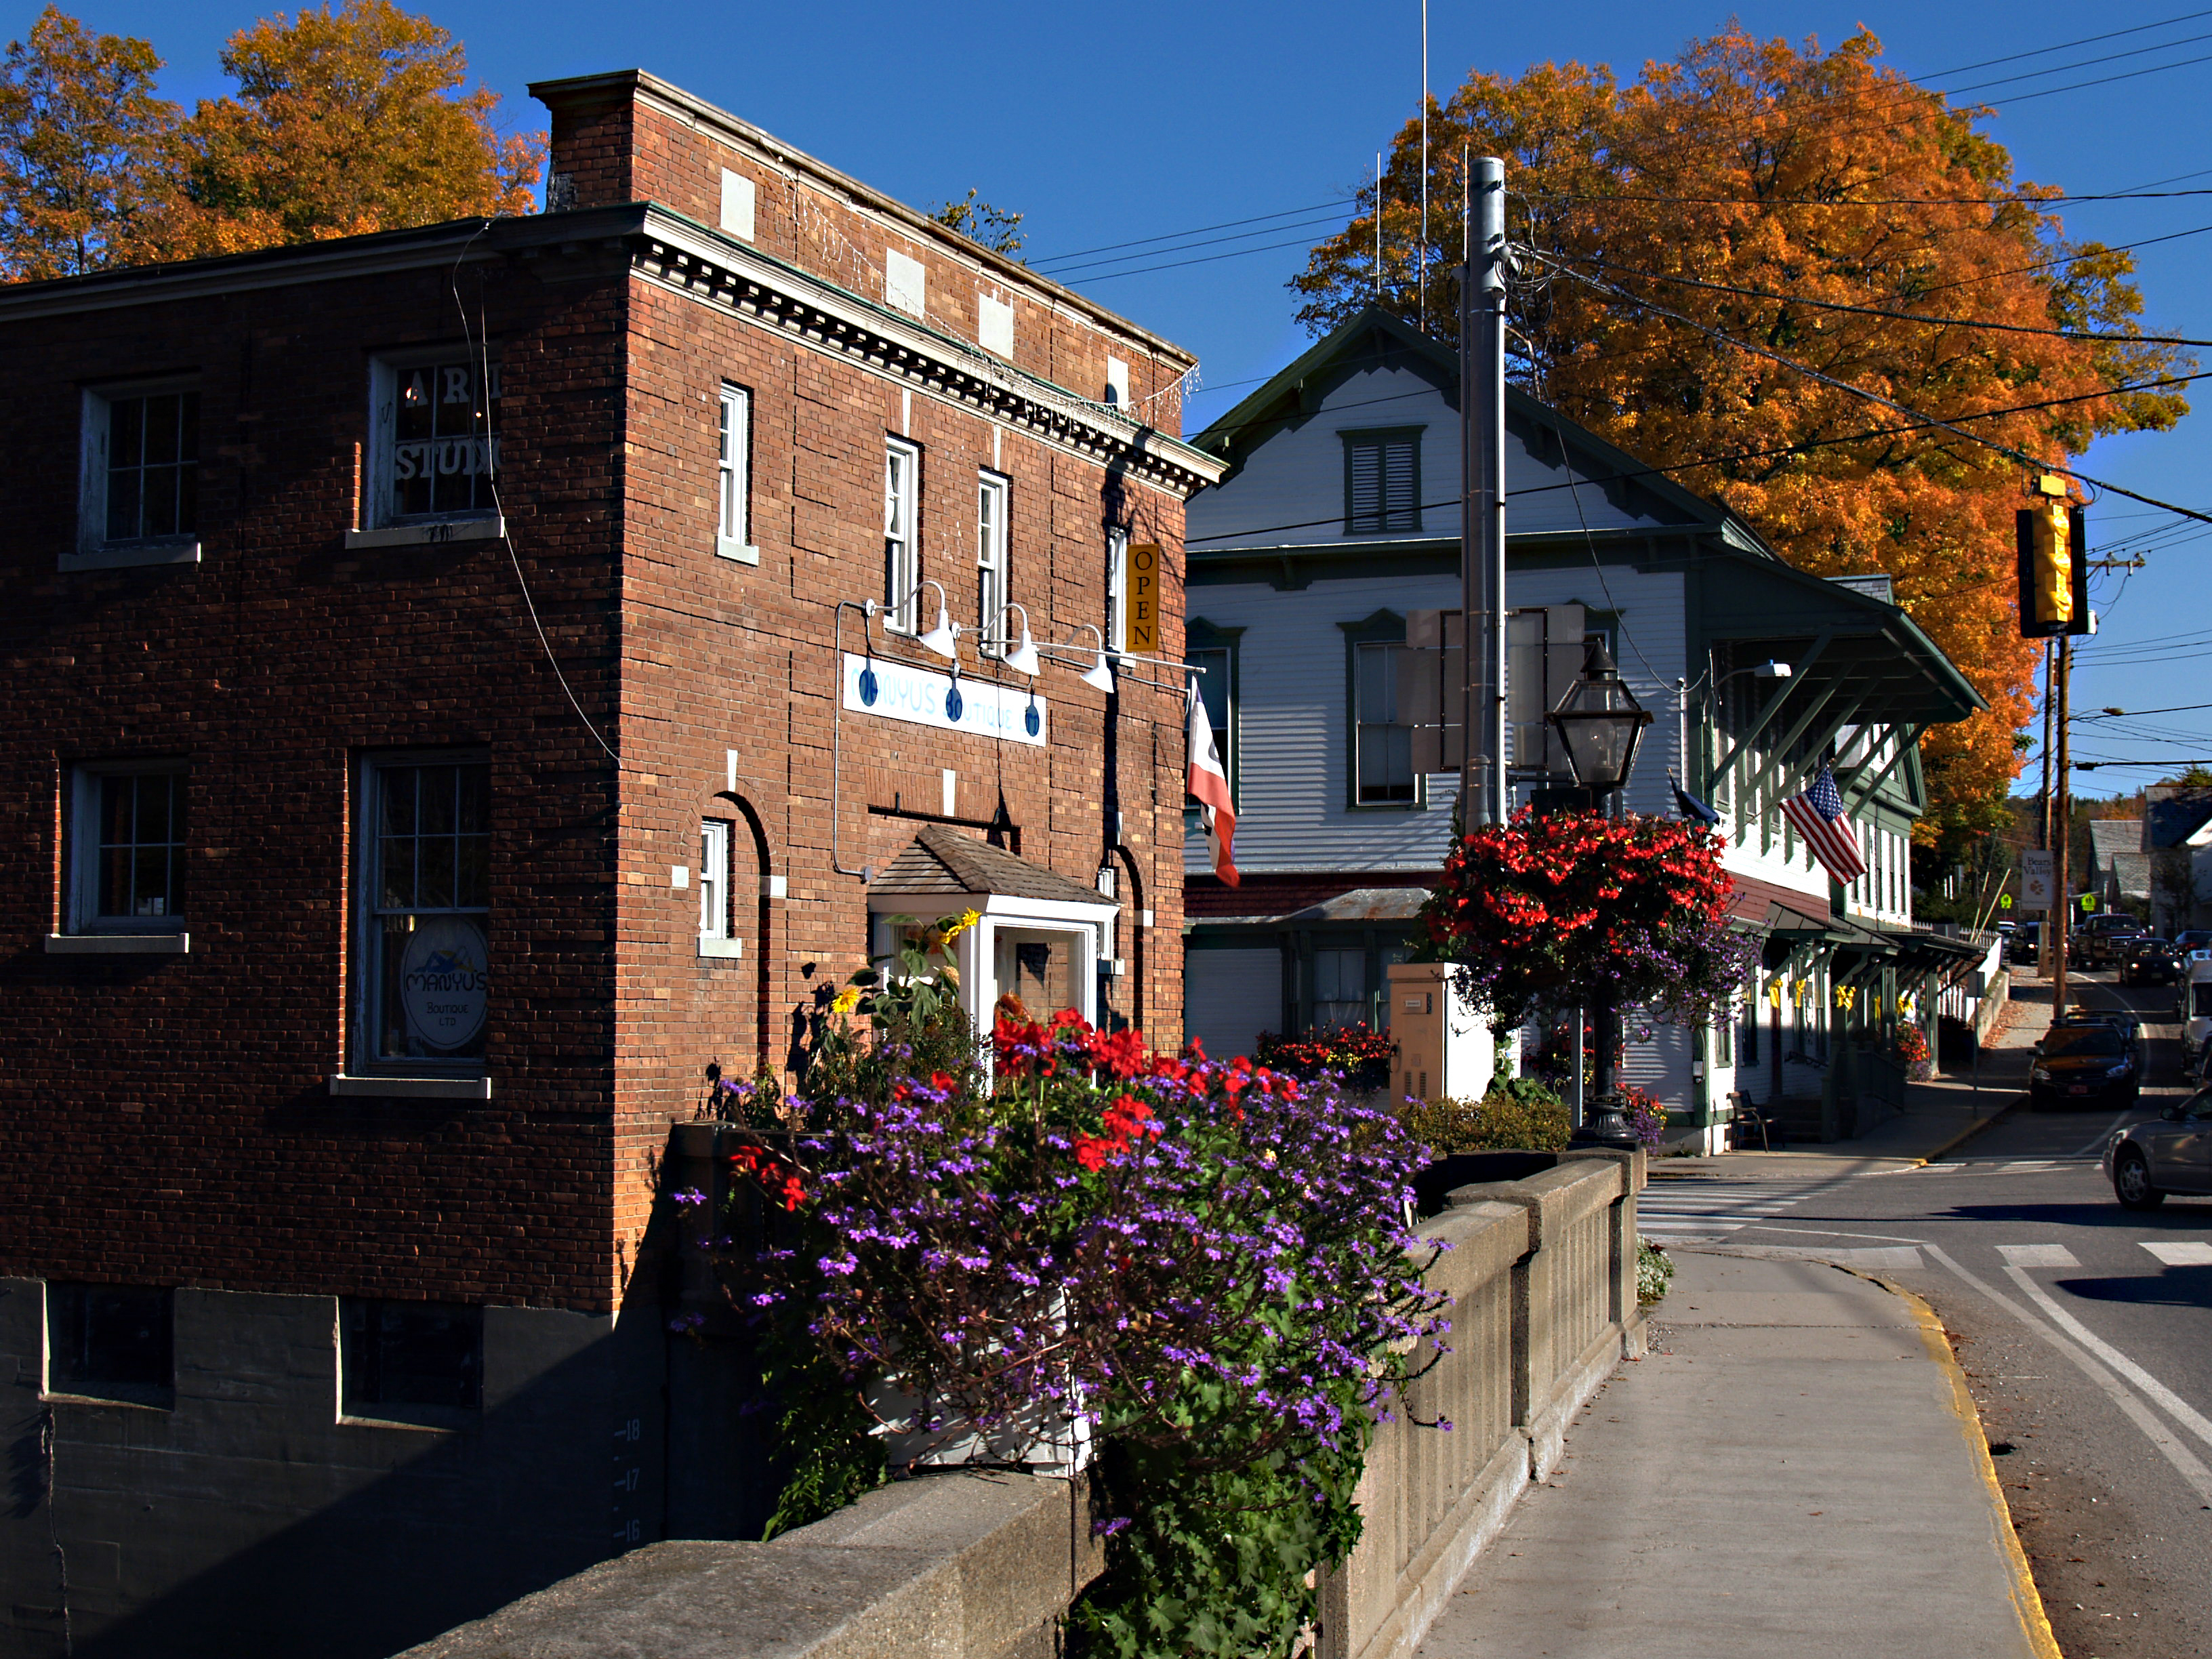 Wilmington, Vermont on the Scenic Route 100 Byway